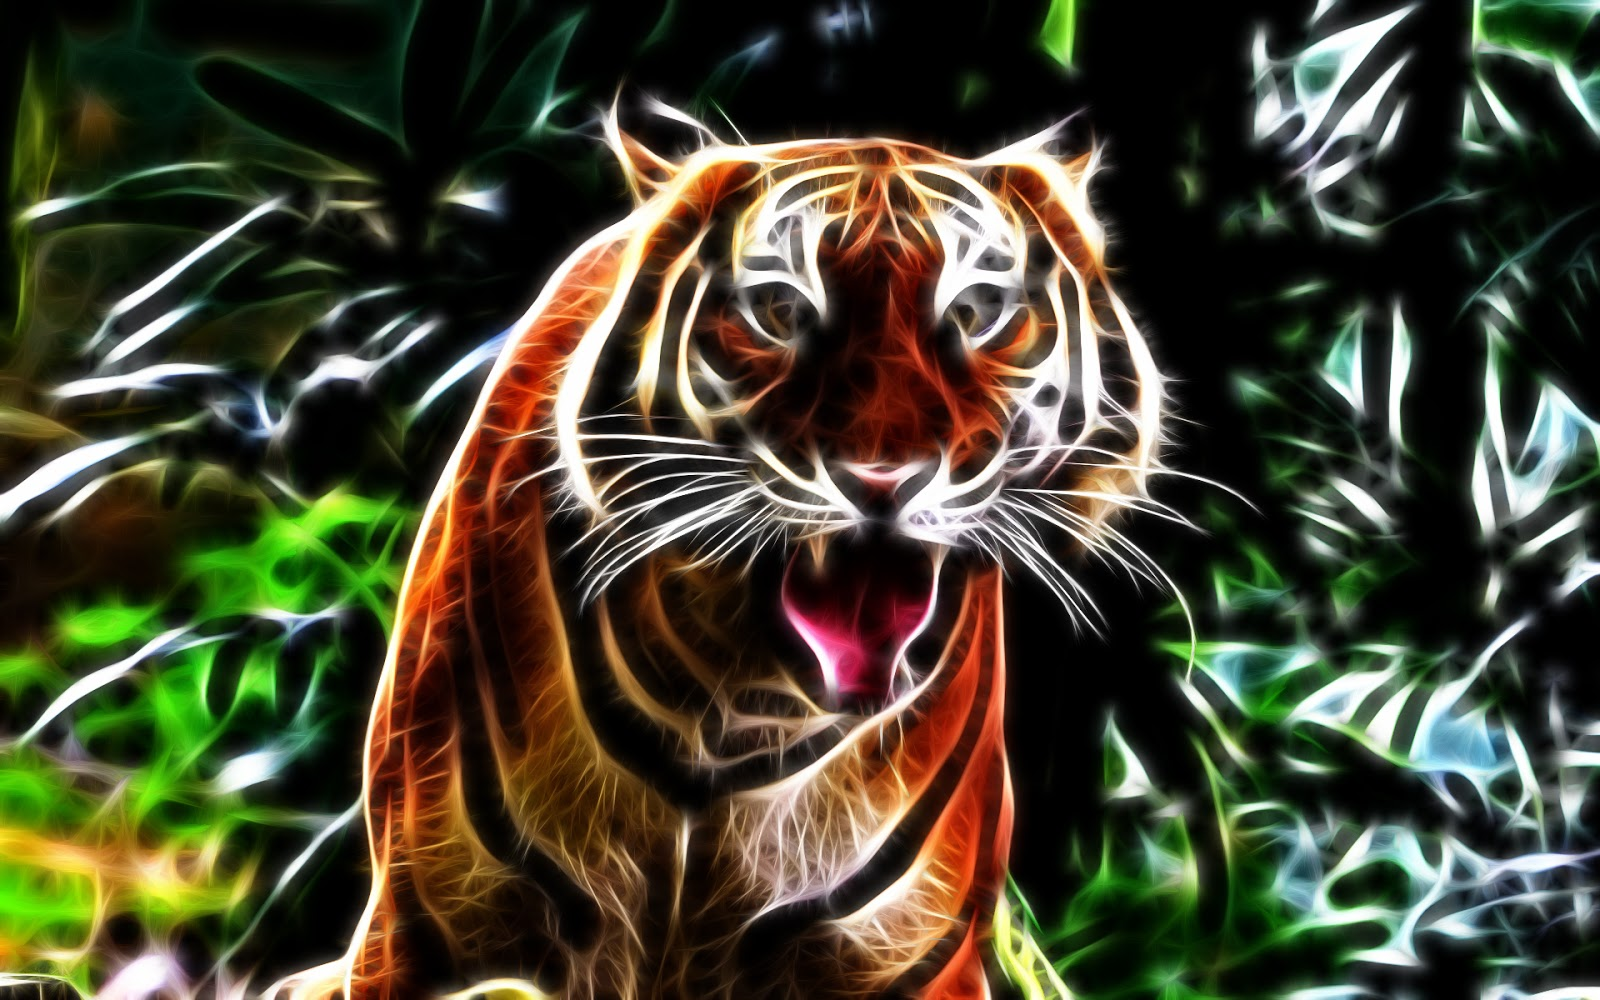 Graphic Design Hd Wallpaper Animal